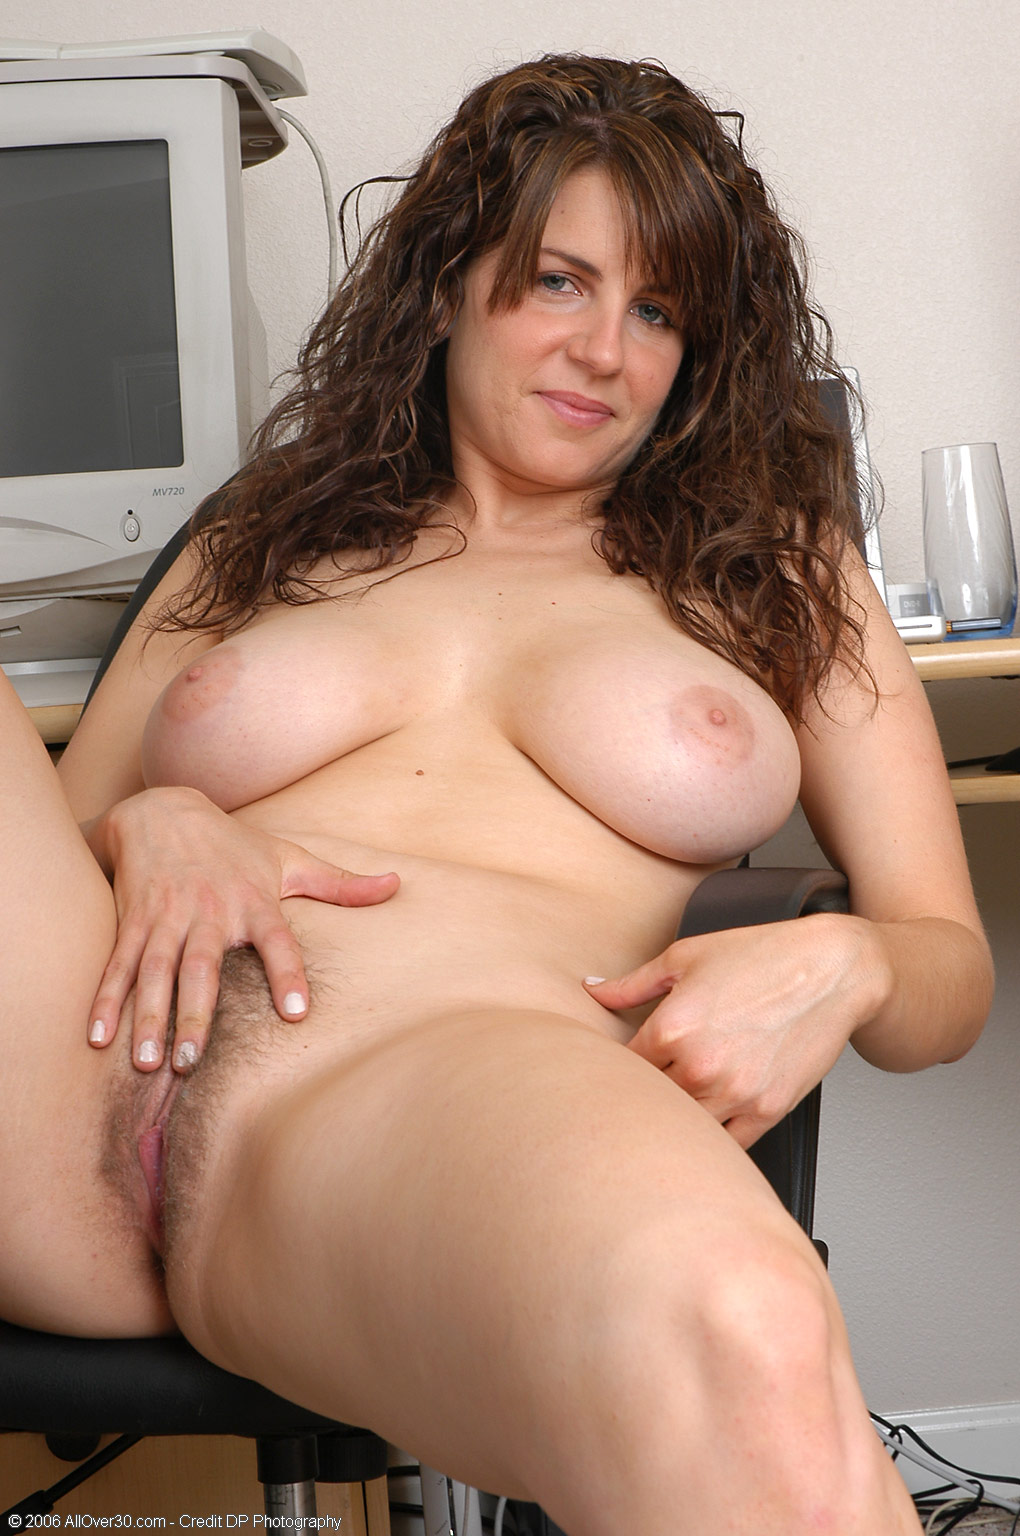 Hairy women over 30